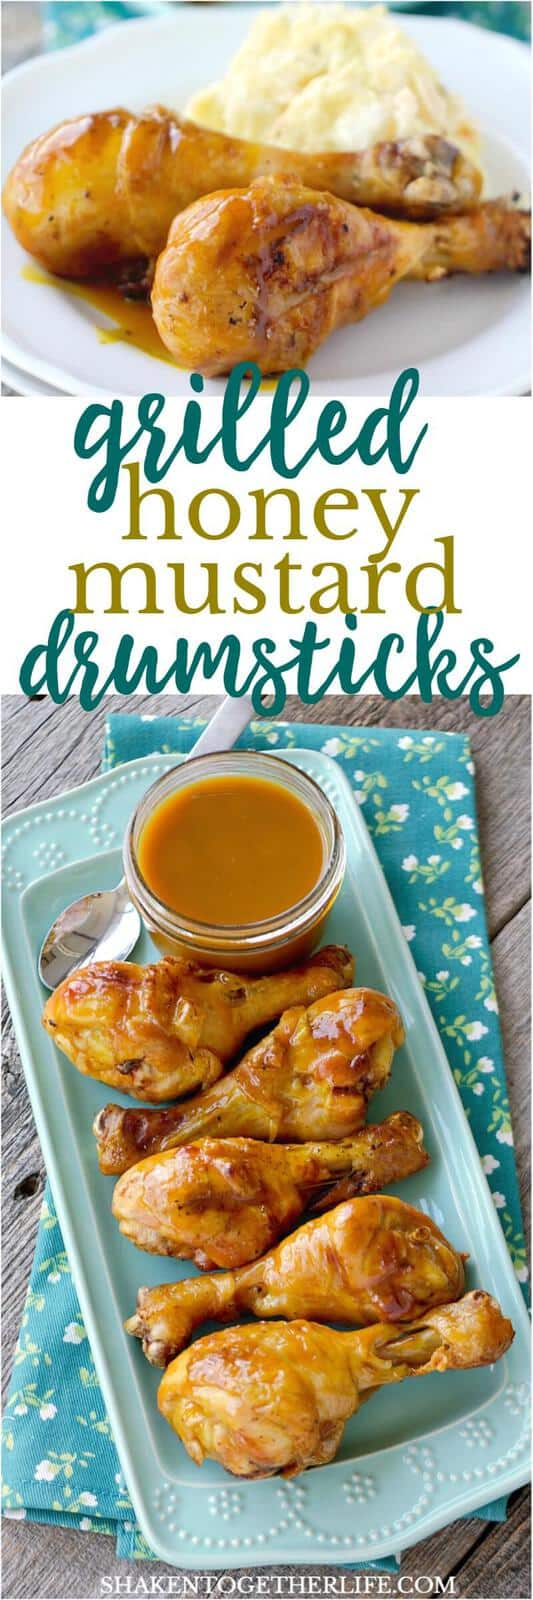 These Grilled Honey Mustard Drumsticks get their glorious sticky glaze from an easy 3 ingredient homemade honey mustard sauce!